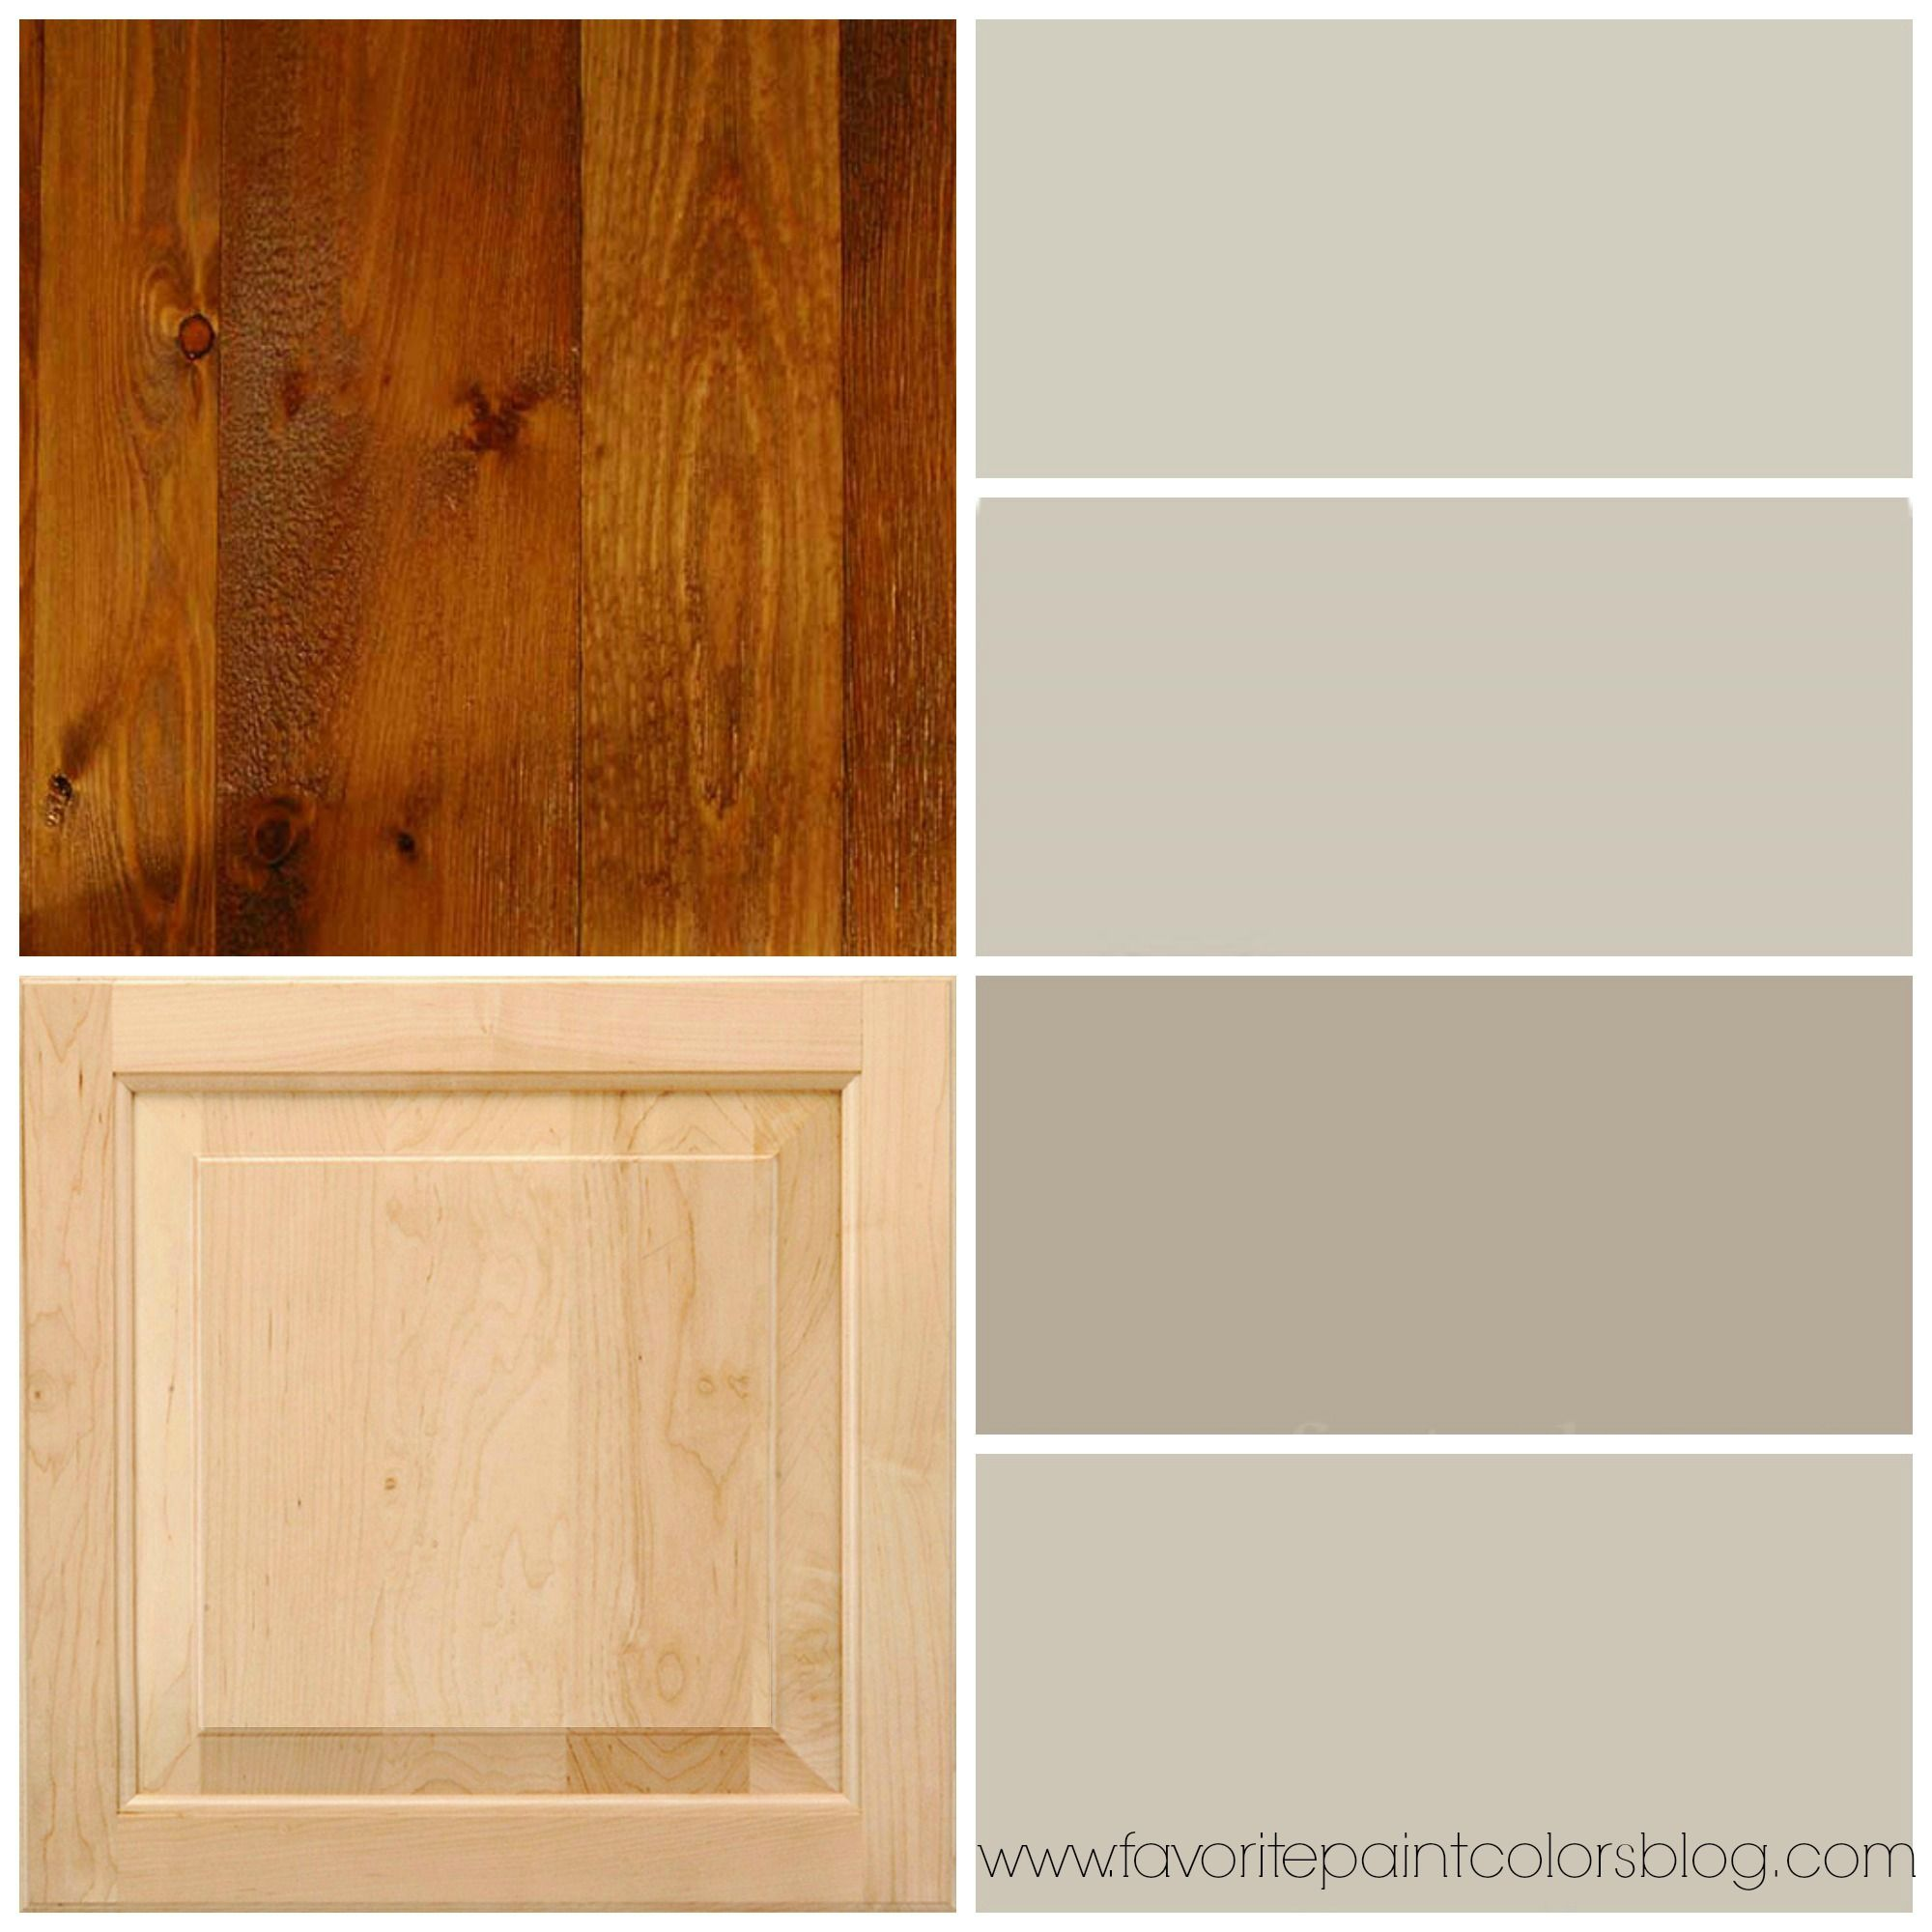 Paint Colors For Kitchens With Golden Oak Cabinets To Do: Reader's Question + More Paint Colors To Go With Wood (Red